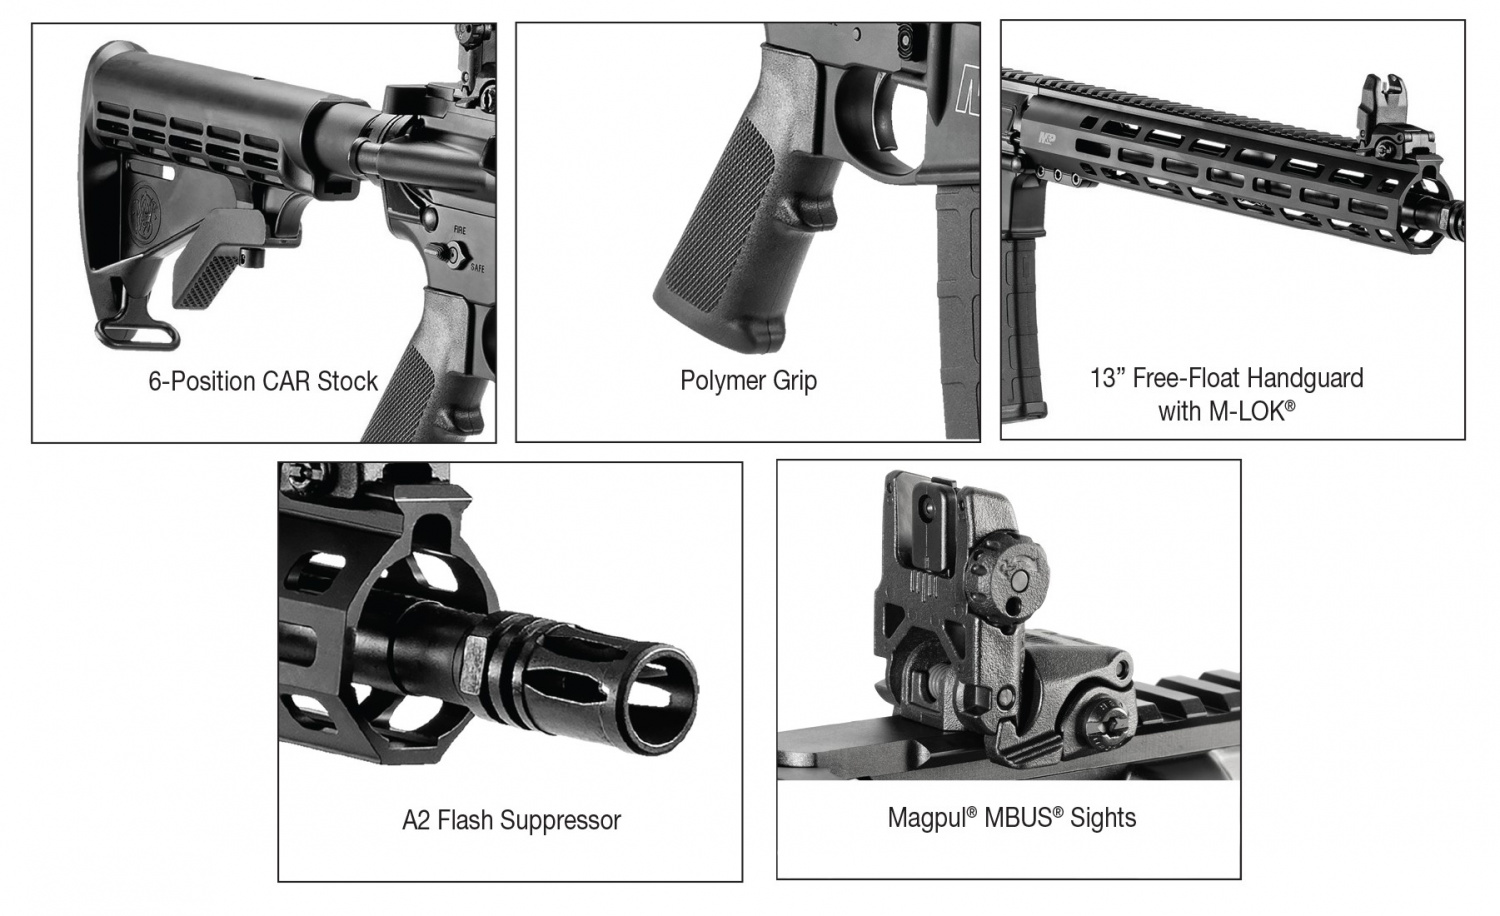 This SBR will include mostly standard features, like the issued-style A2 birdcage muzzle device, grip, and stock pictured here.